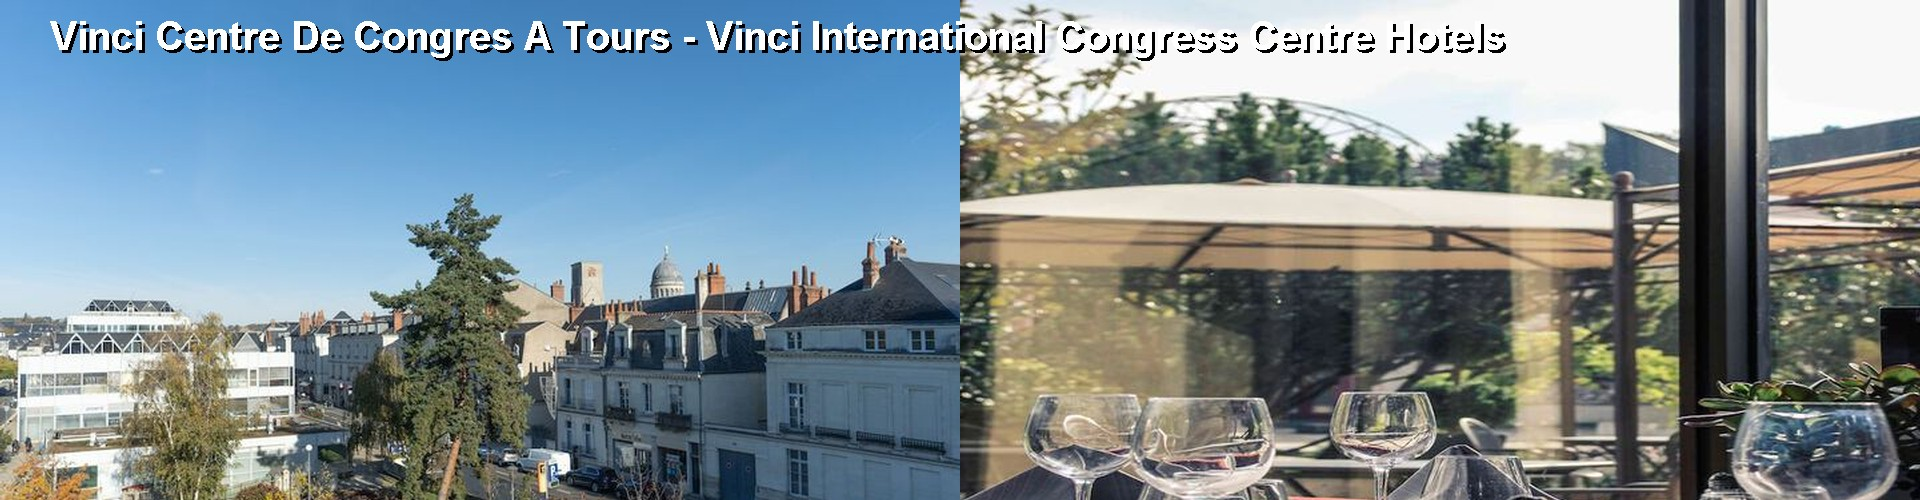 5 Best Hotels near Vinci Centre De Congres A Tours - Vinci International Congress Centre